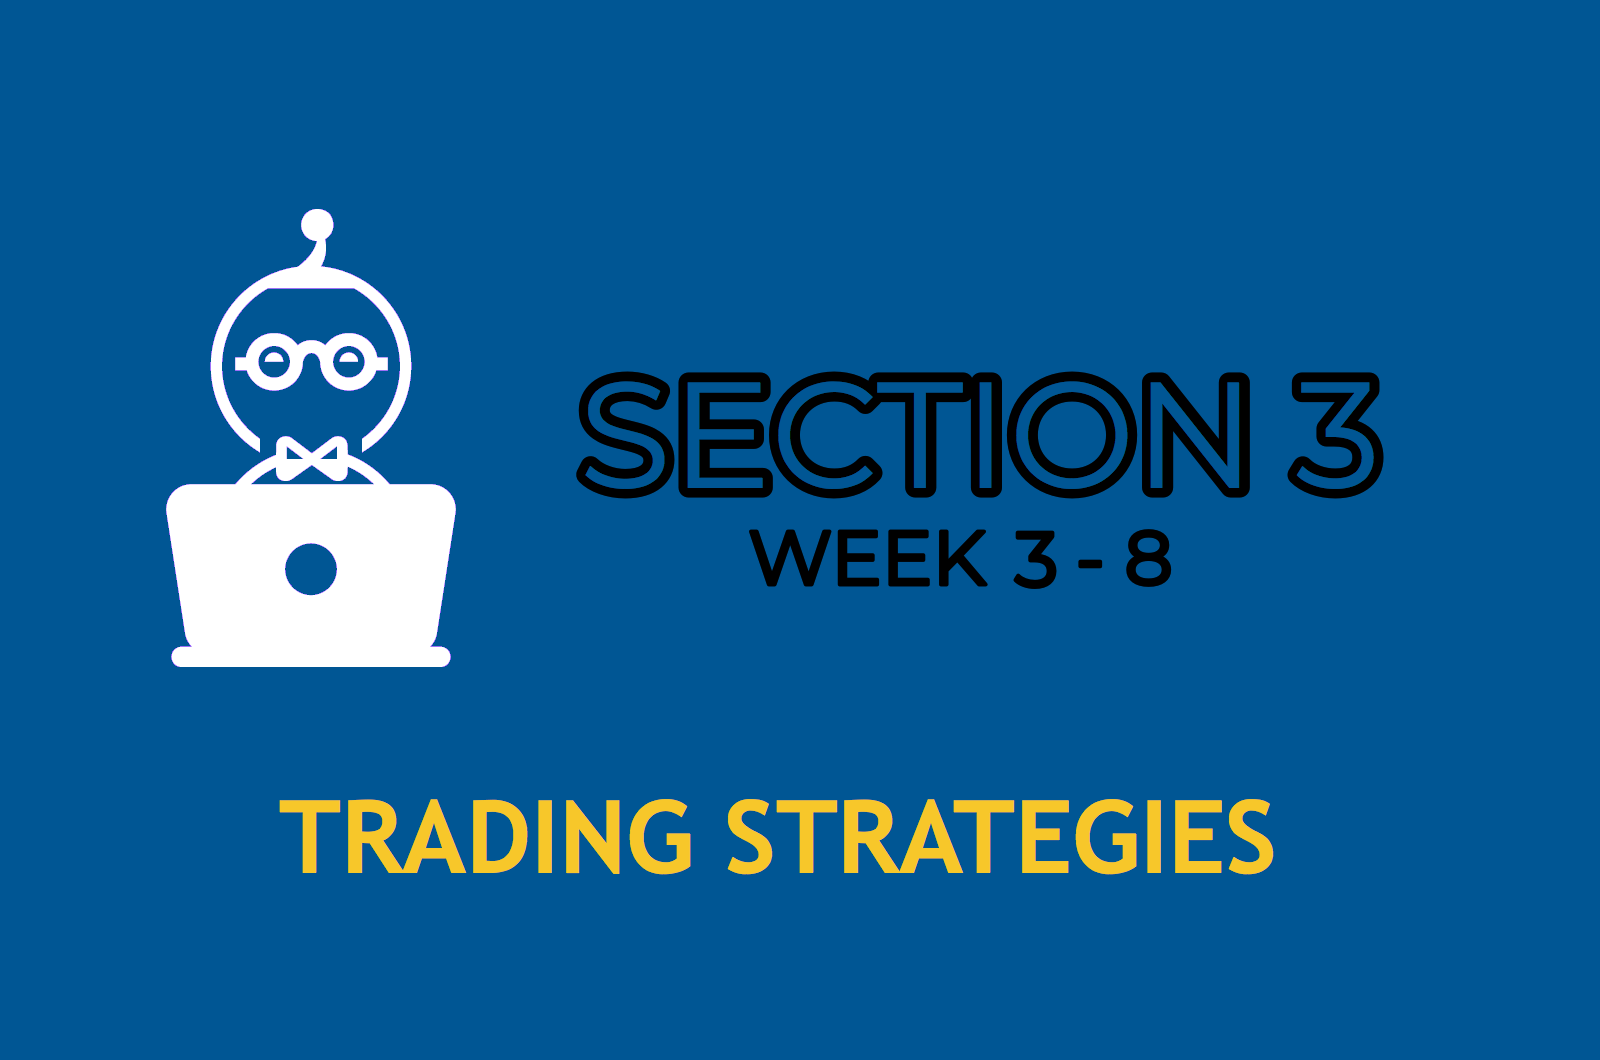 SECTION 3 (WEEK 3-8)    TRADING STRATEGIES    ENTER